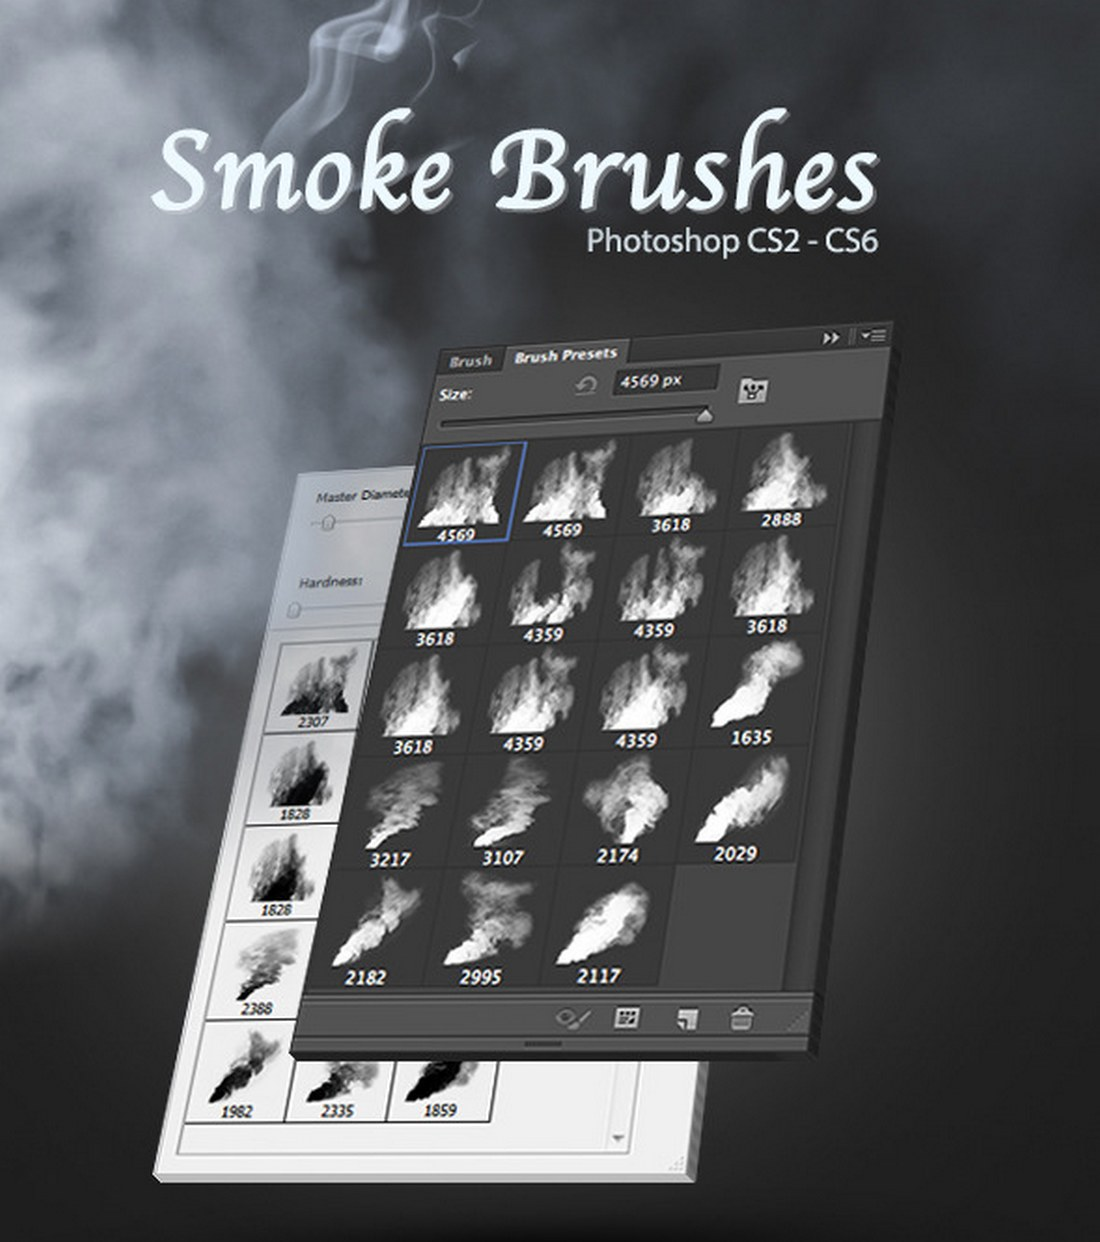 19-High-Quality-Photoshop-Smoke-Brushes 15+ Best Photoshop Smoke Brushes design tips